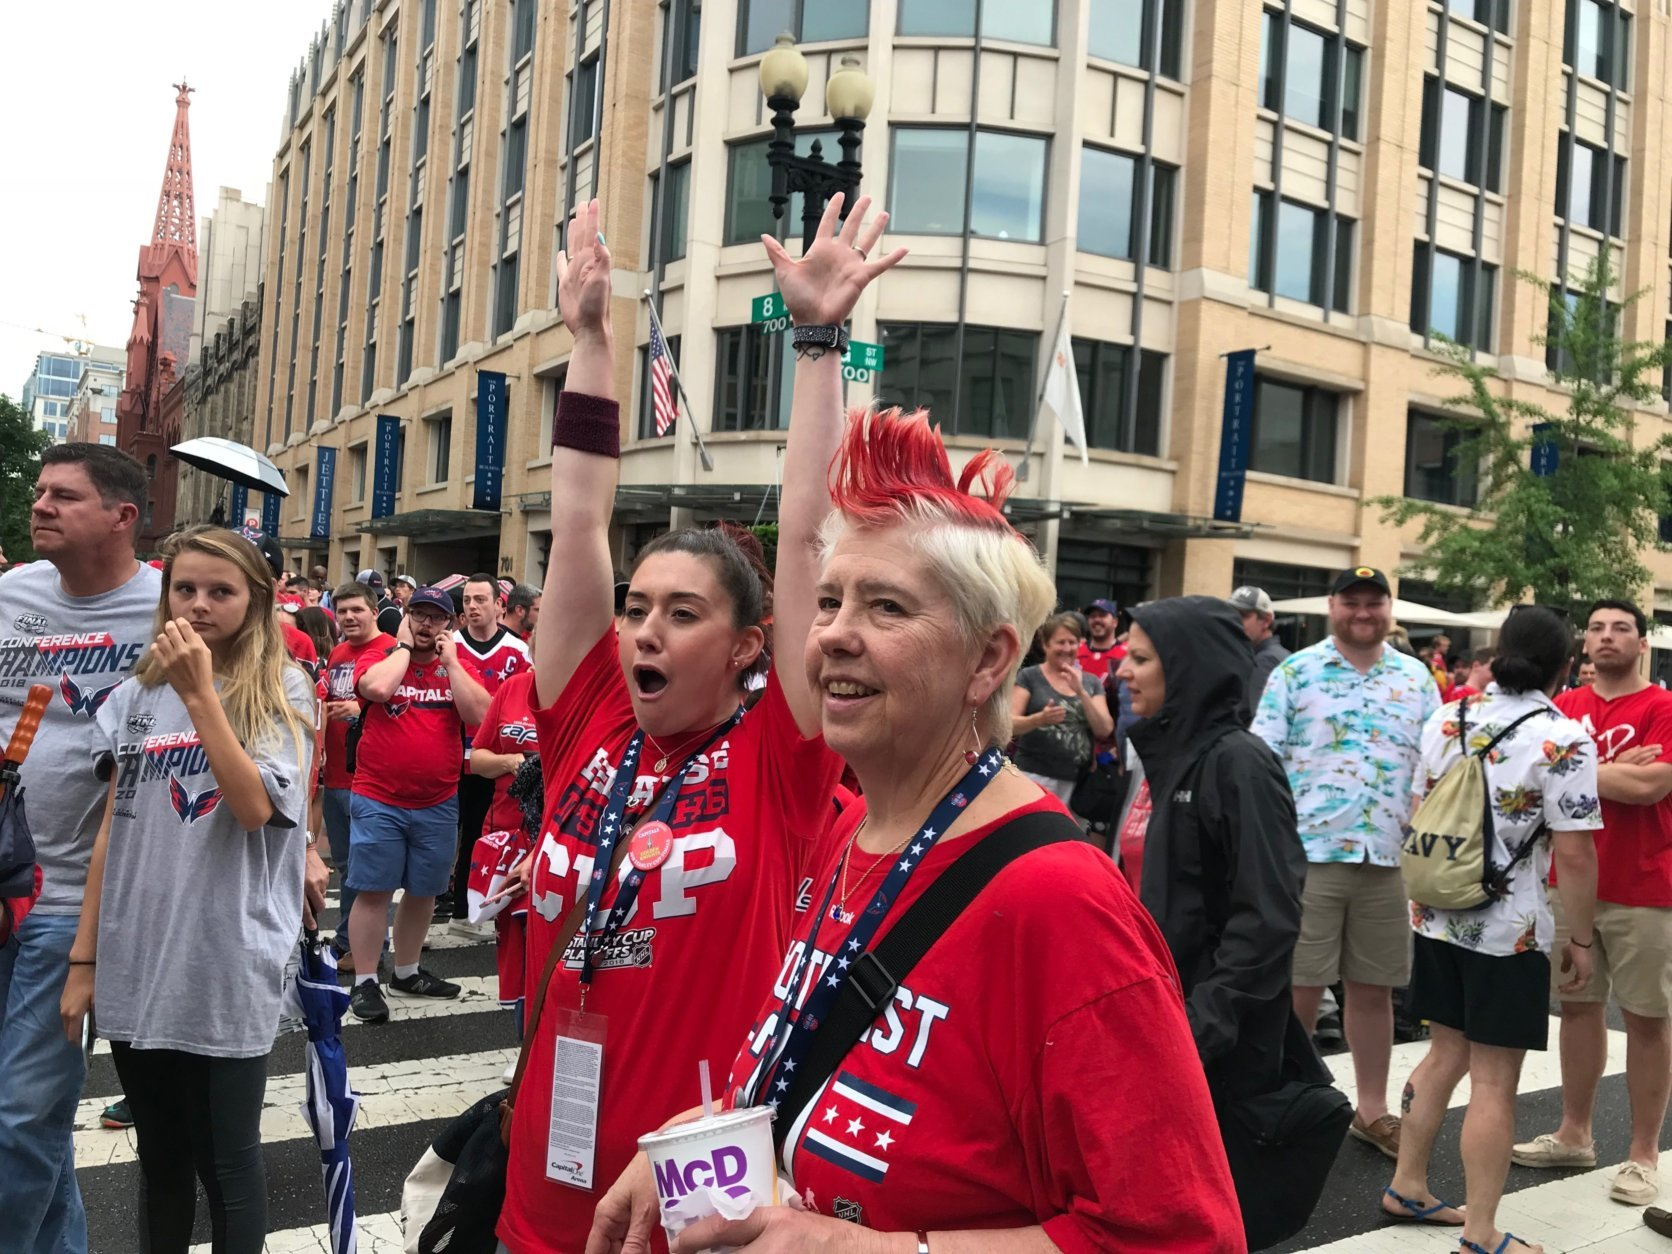 Washington Capitals fans gather in front of the National Portrait Gallery for pregame concert on Saturday, June 2, 2018. (WTOP/Dick Uliano)